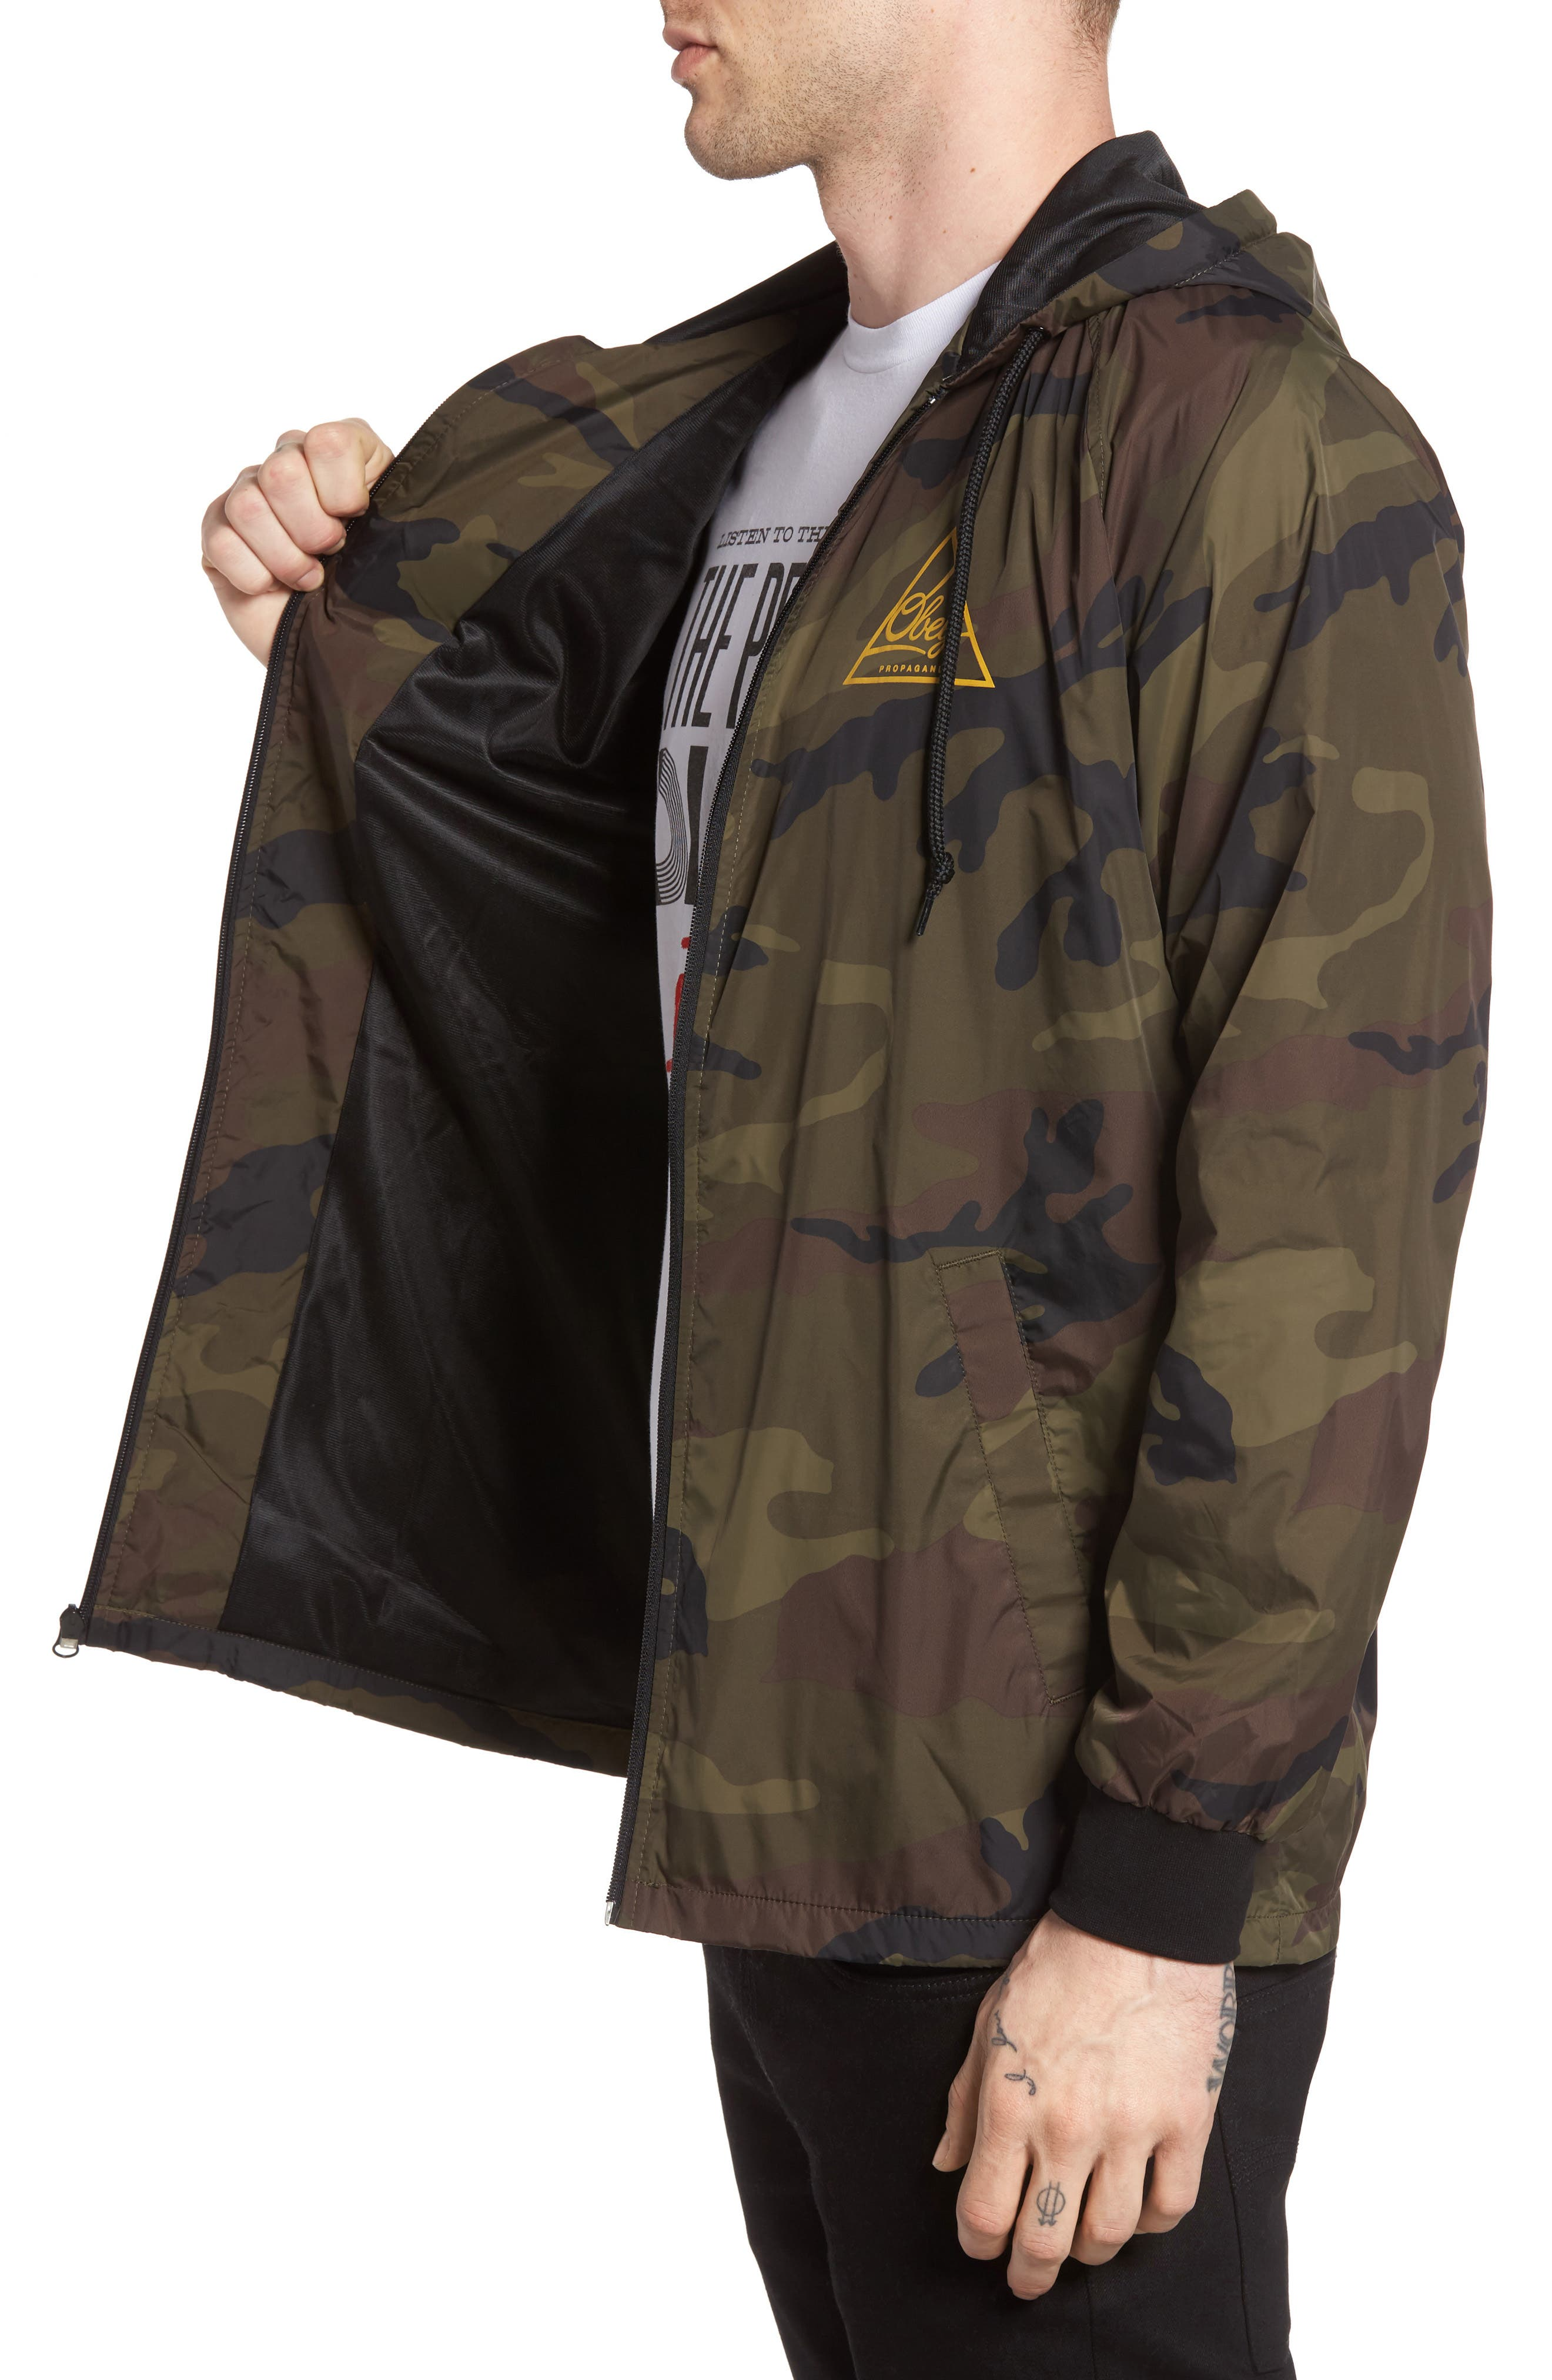 Next Round 2 Hooded Coach Jacket,                             Alternate thumbnail 4, color,                             305